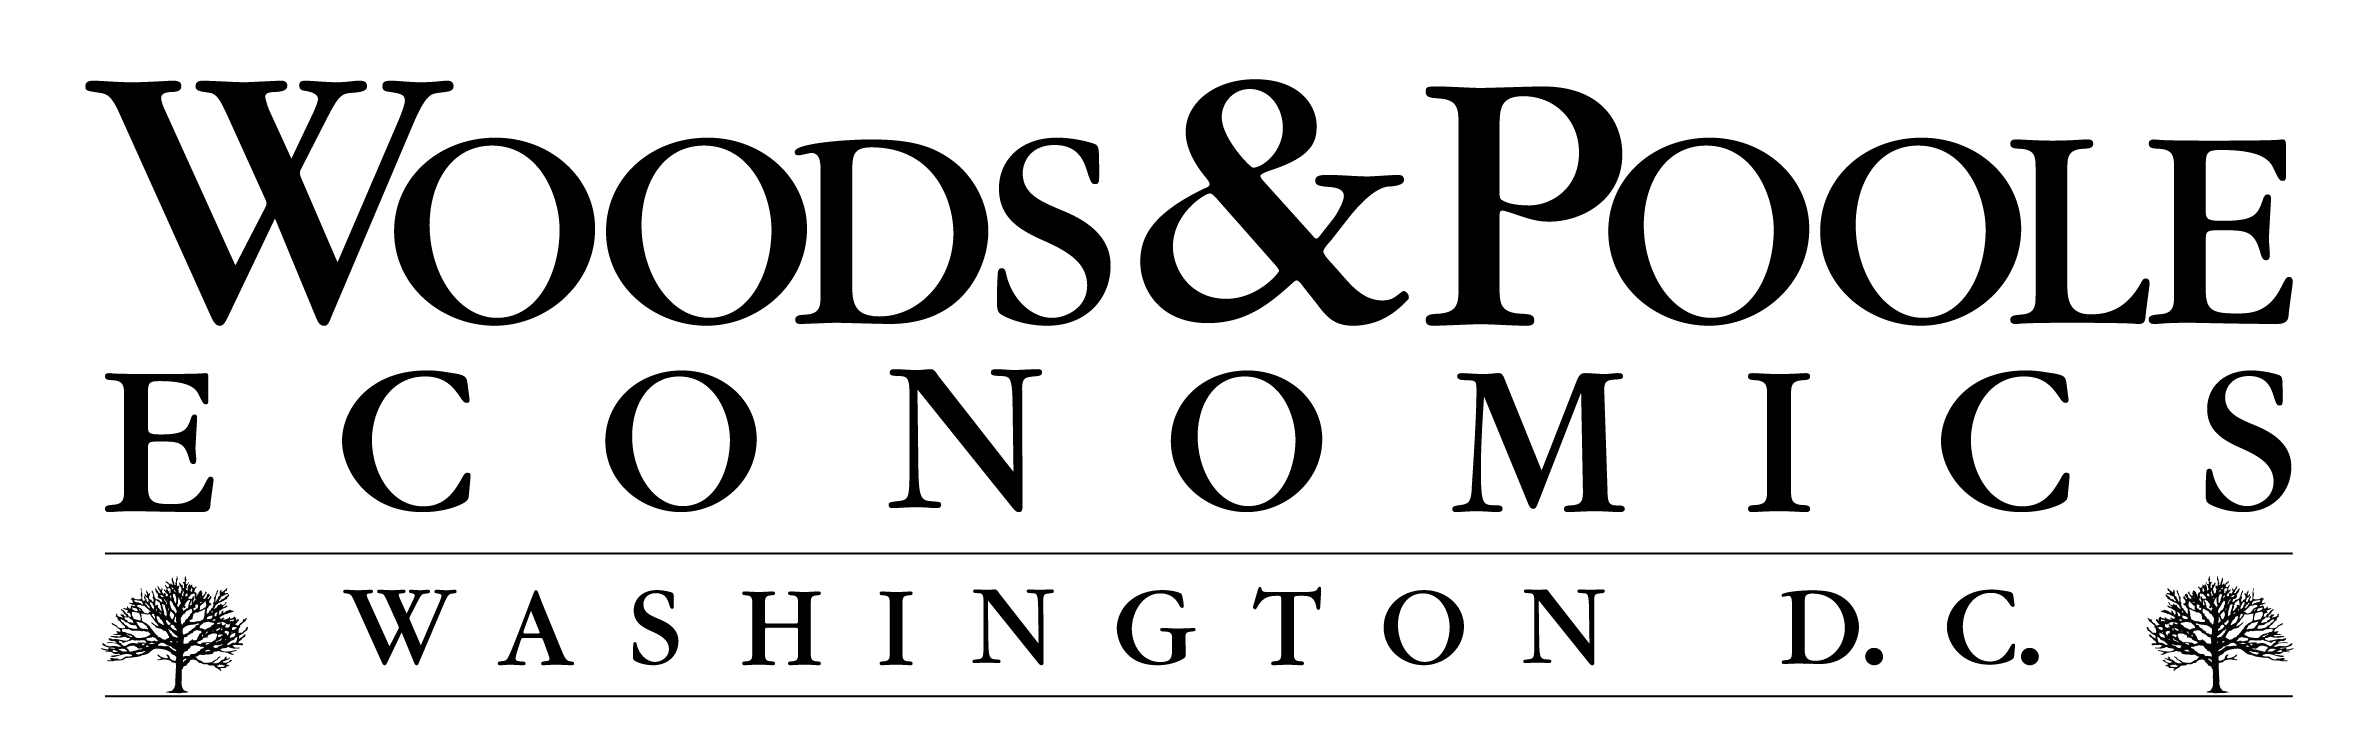 BLACKSBURG-CHRISTIANSBURG-RADFORD VA (FIPS 13980) | Woods & Poole Economics, Inc